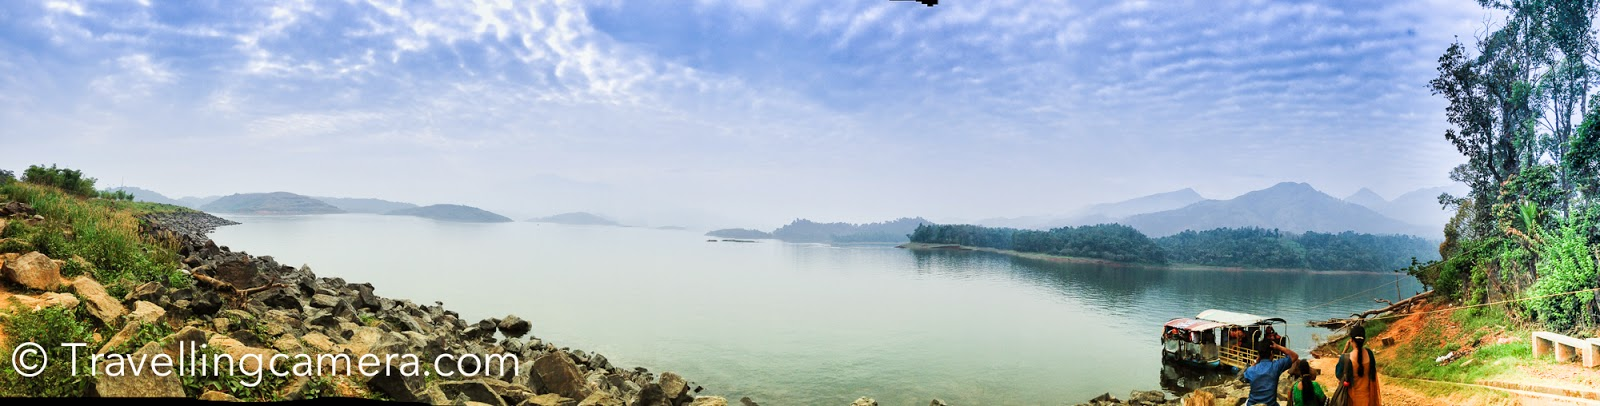 Another view of the place around Banasura sagar dam, from where speedboats take you to the tour of this lake.